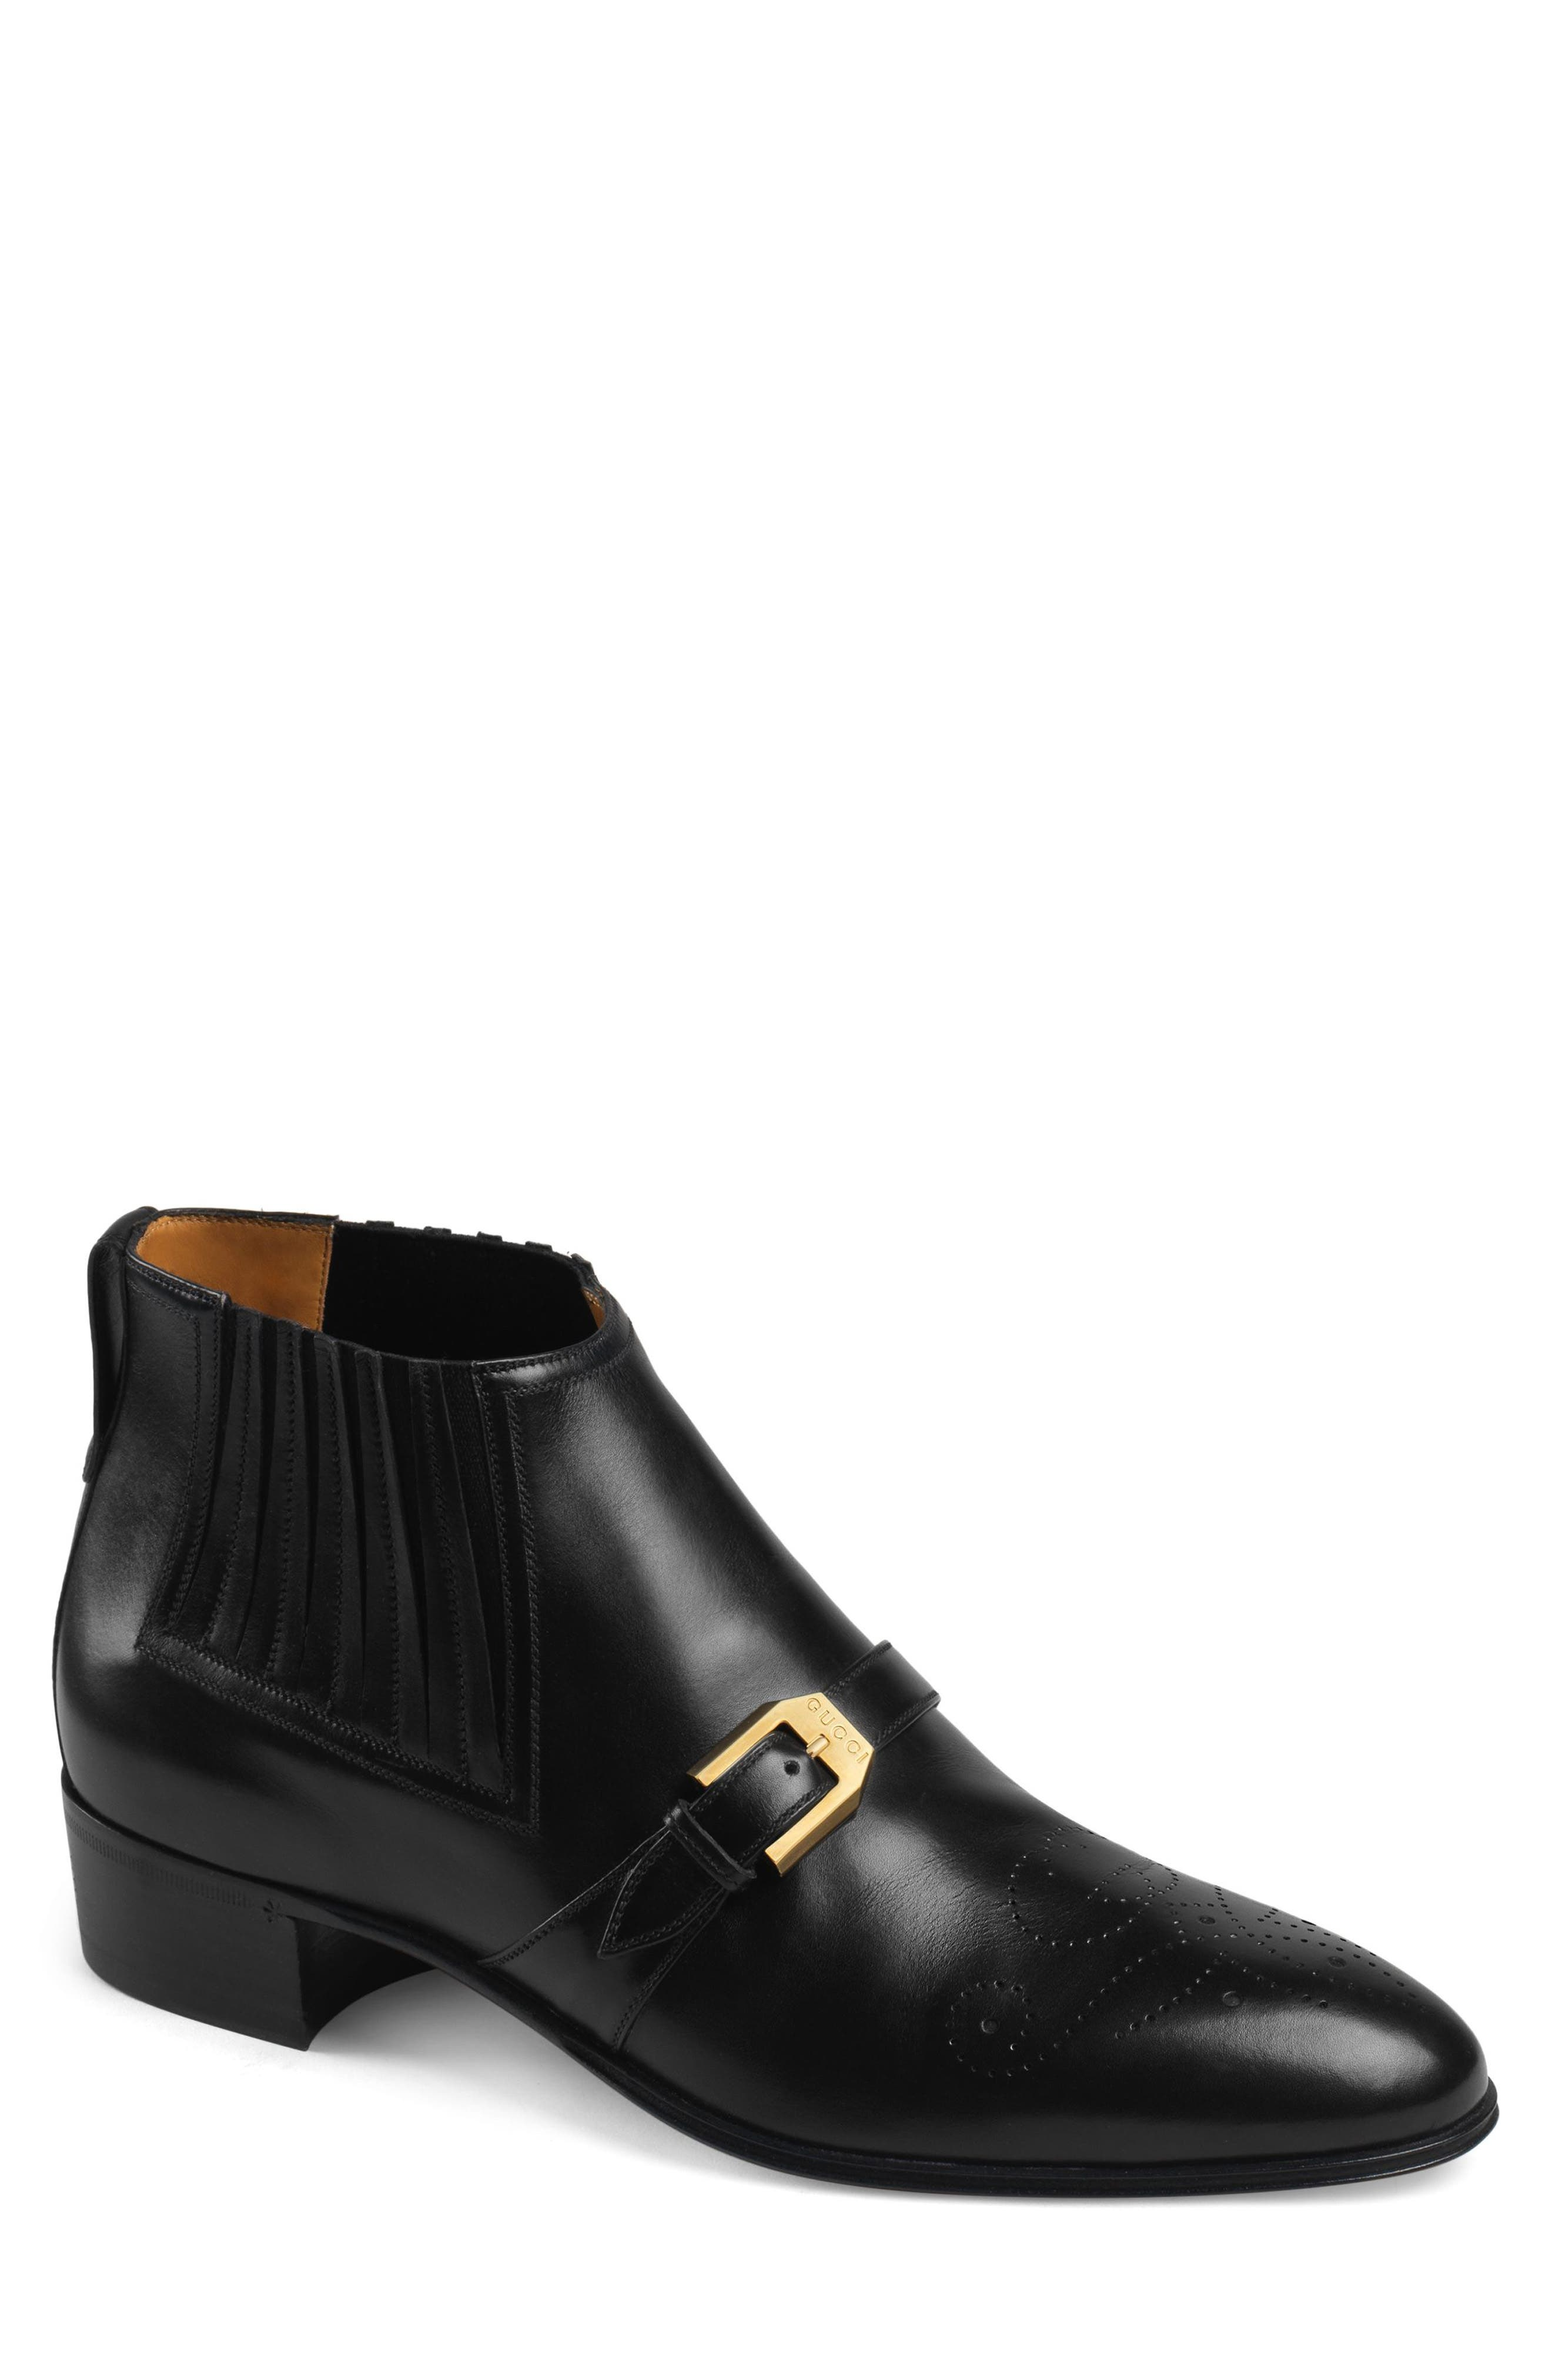 Gucci Worsh Chelsea Boot, Black